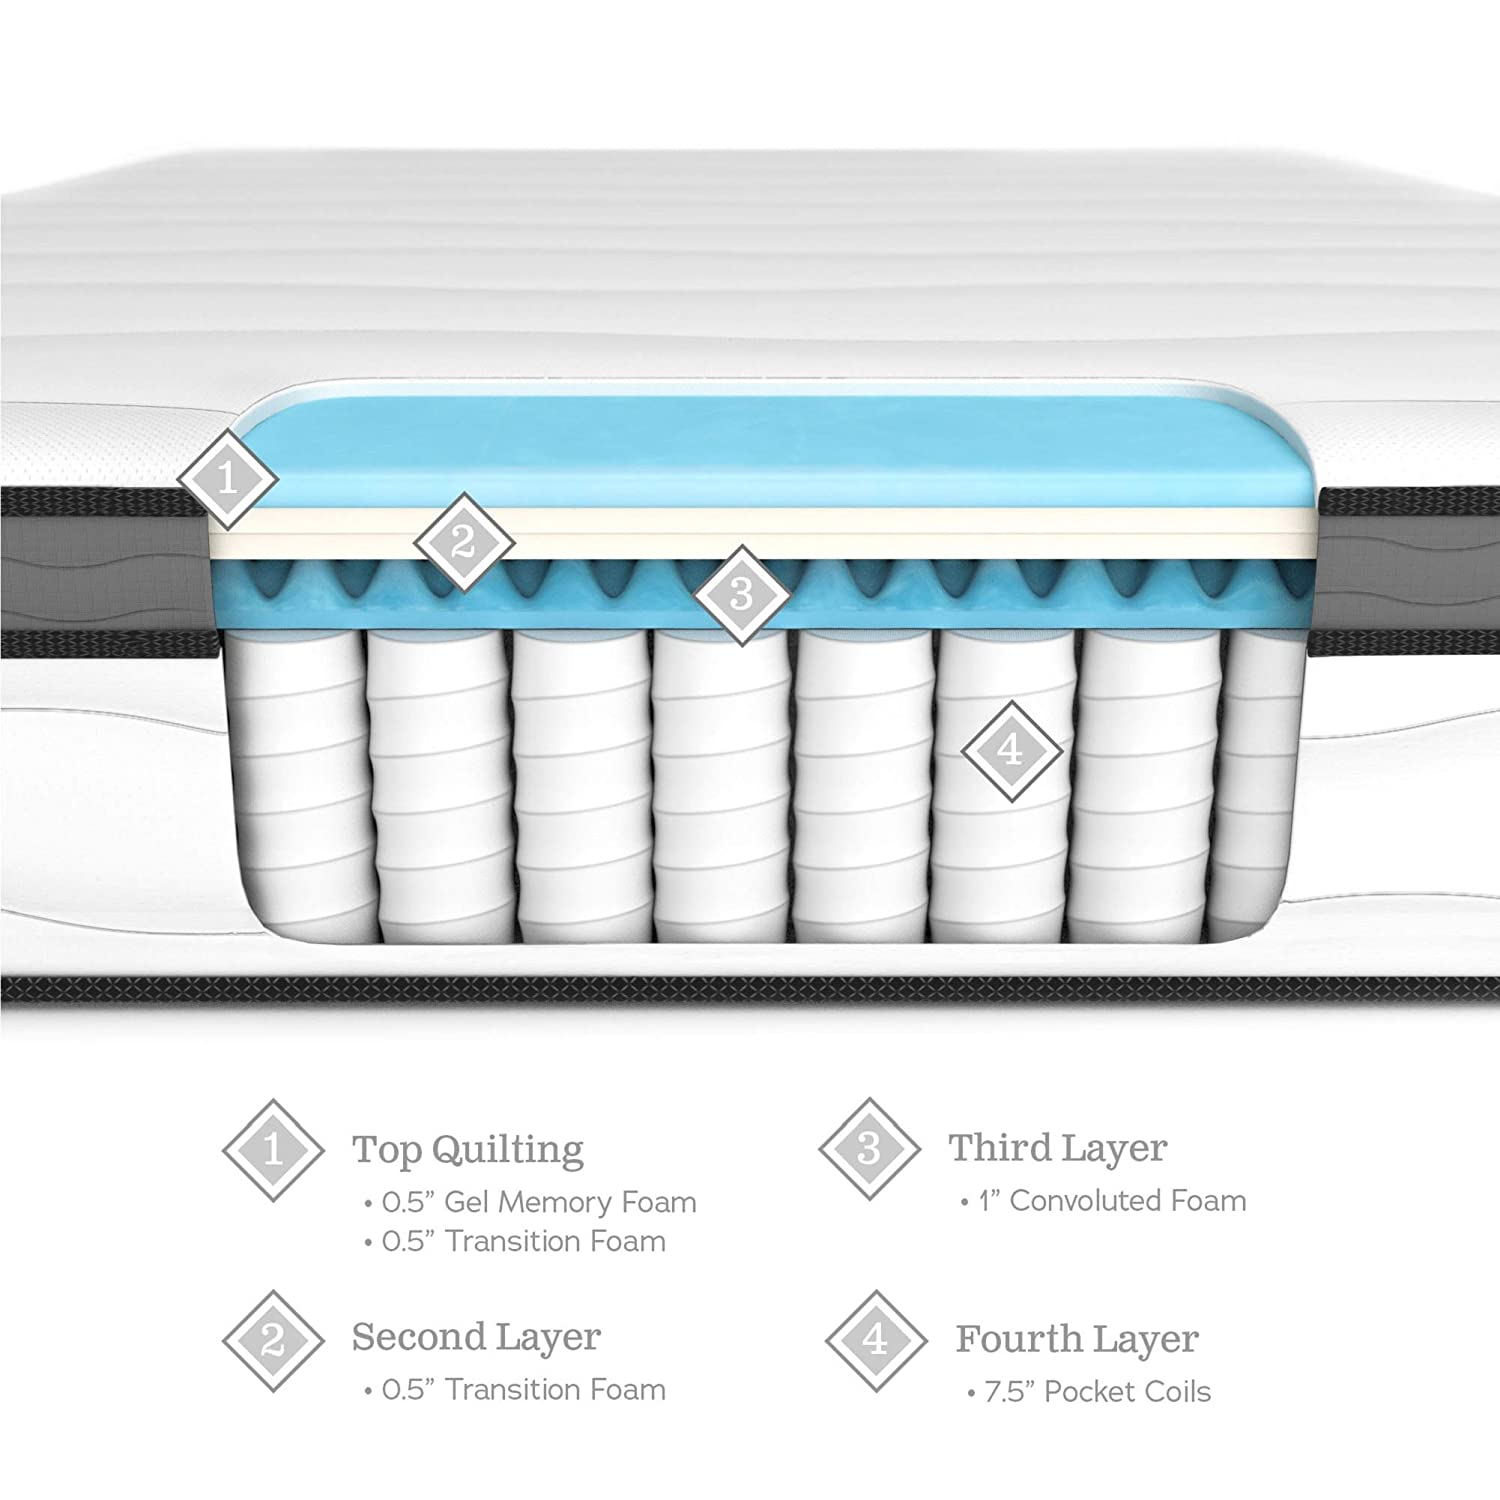 Amazon.com: WEEKENDER 10 Inch Hybrid Mattress - Memory Foam and Motion Isolating Springs - Medium-Firm - 10 Year U.S. Warranty - Full: Kitchen & Dining